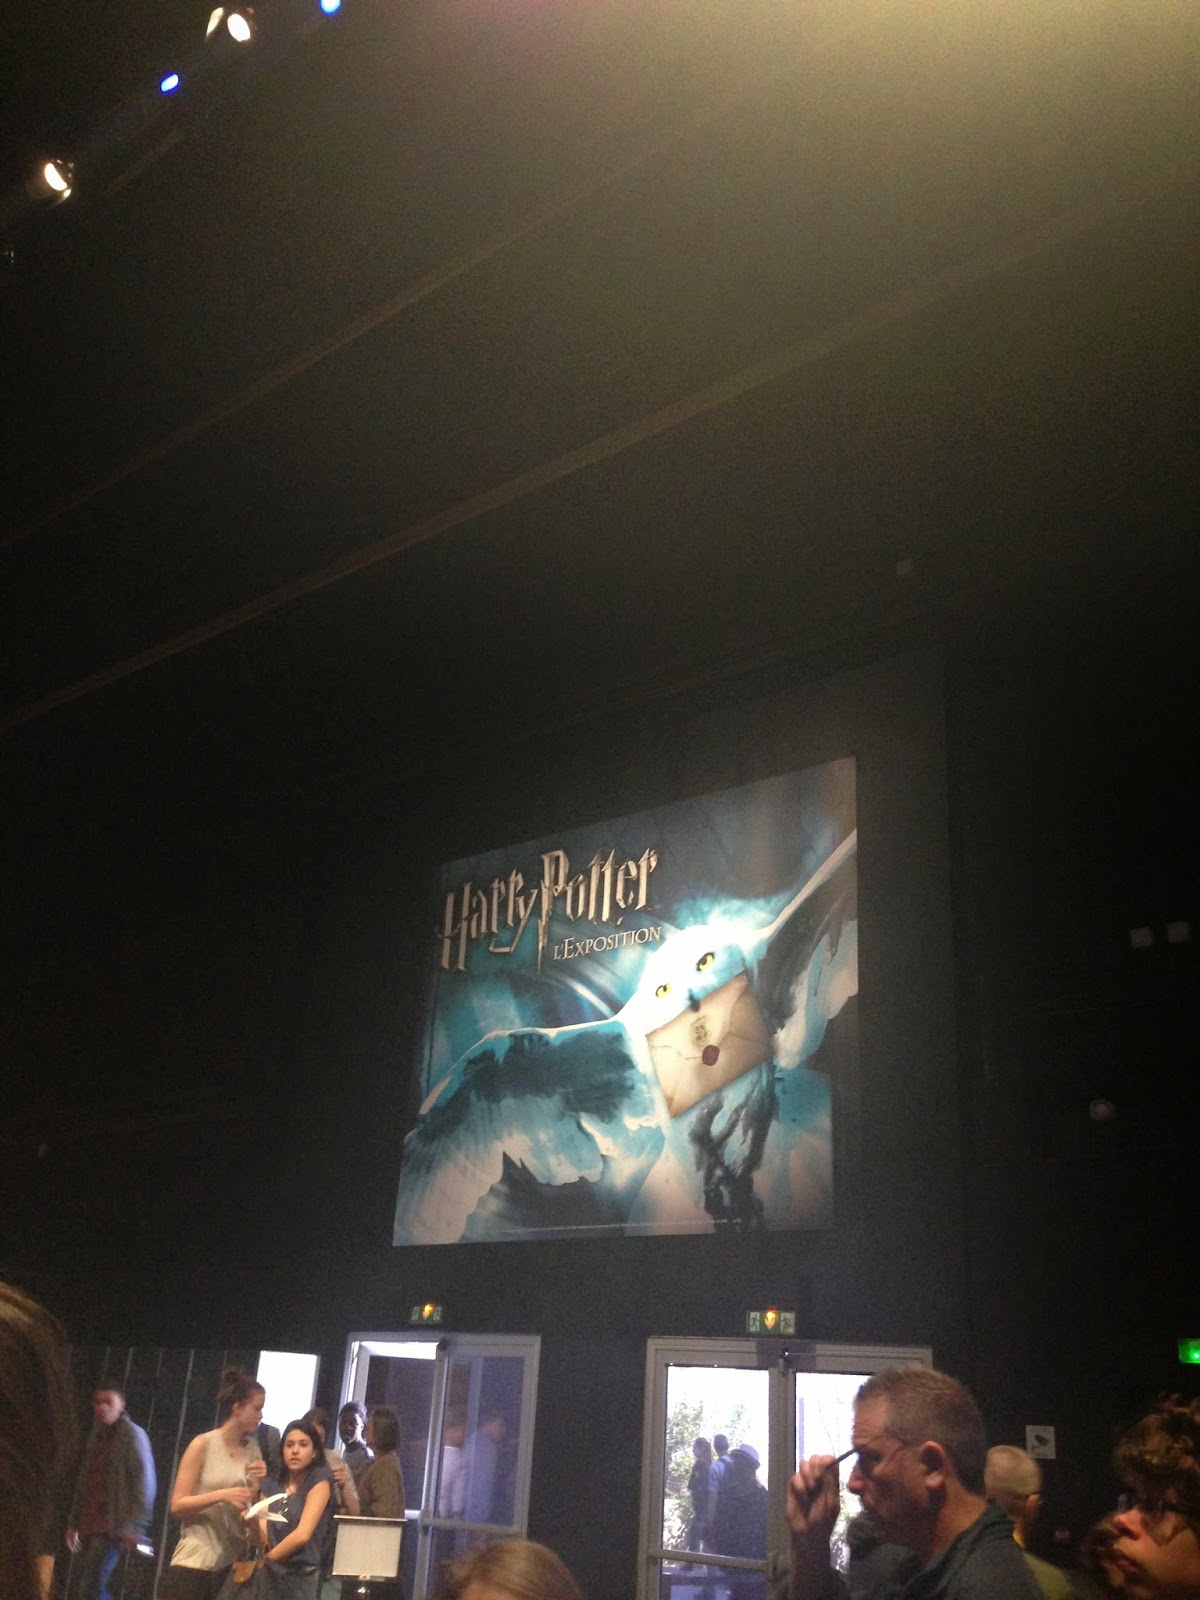 affiche de l'exposition d'harry potter